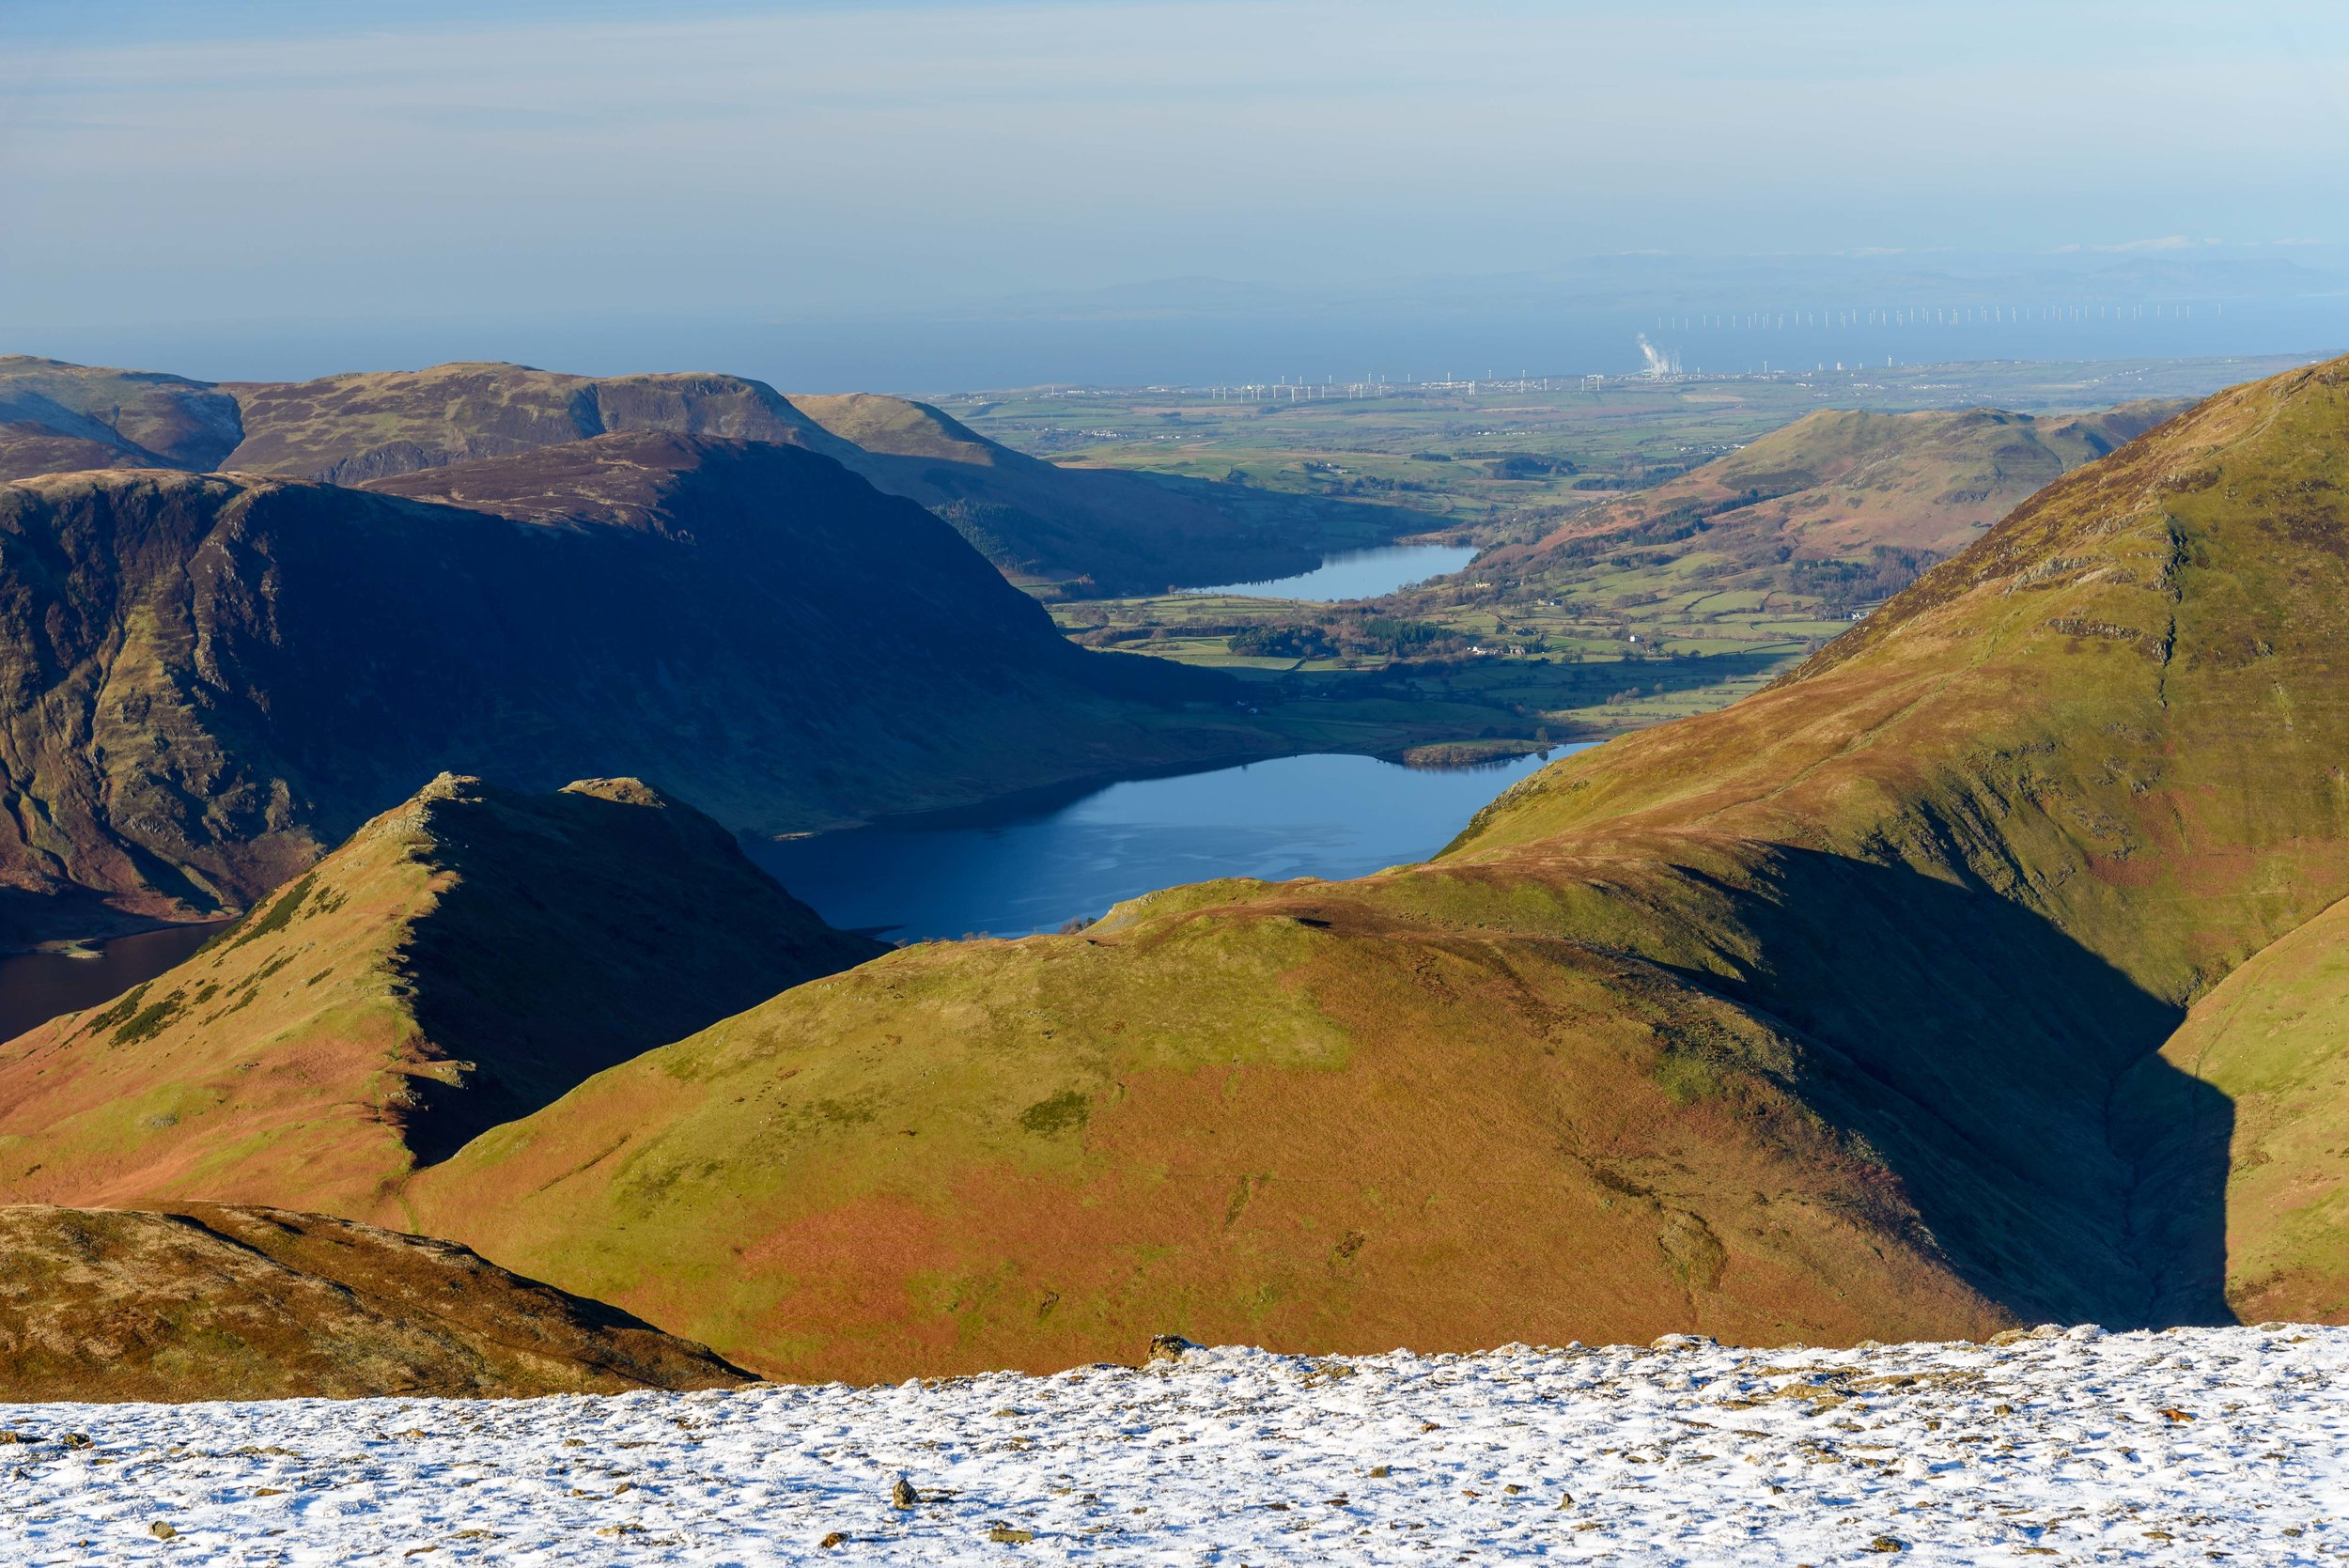 The View from Robinson. Crummock Water, Loweswater, Rannerdale Knotts, Mellbreak, Grasmoor and more